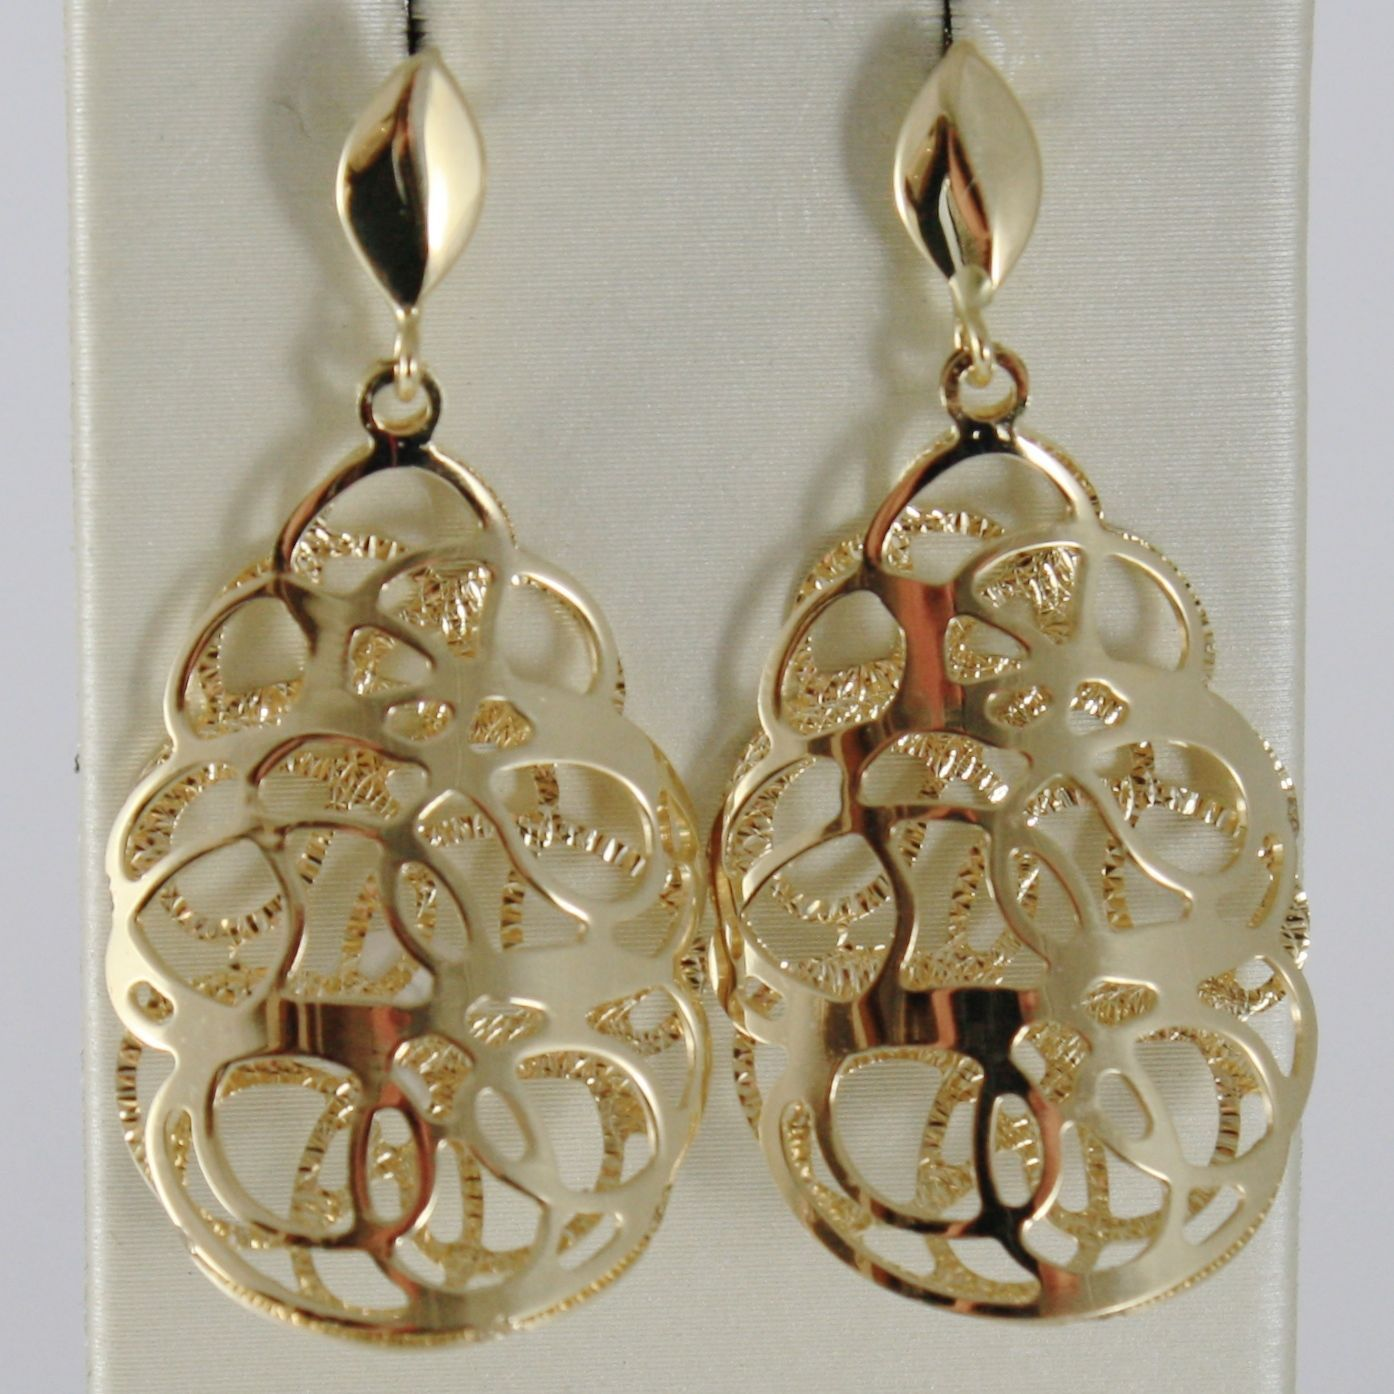 SOLID 18K YELLOW GOLD PENDANT EARRINGS FINELY WORKED DOUBLE CLOUD, MADE IN ITALY